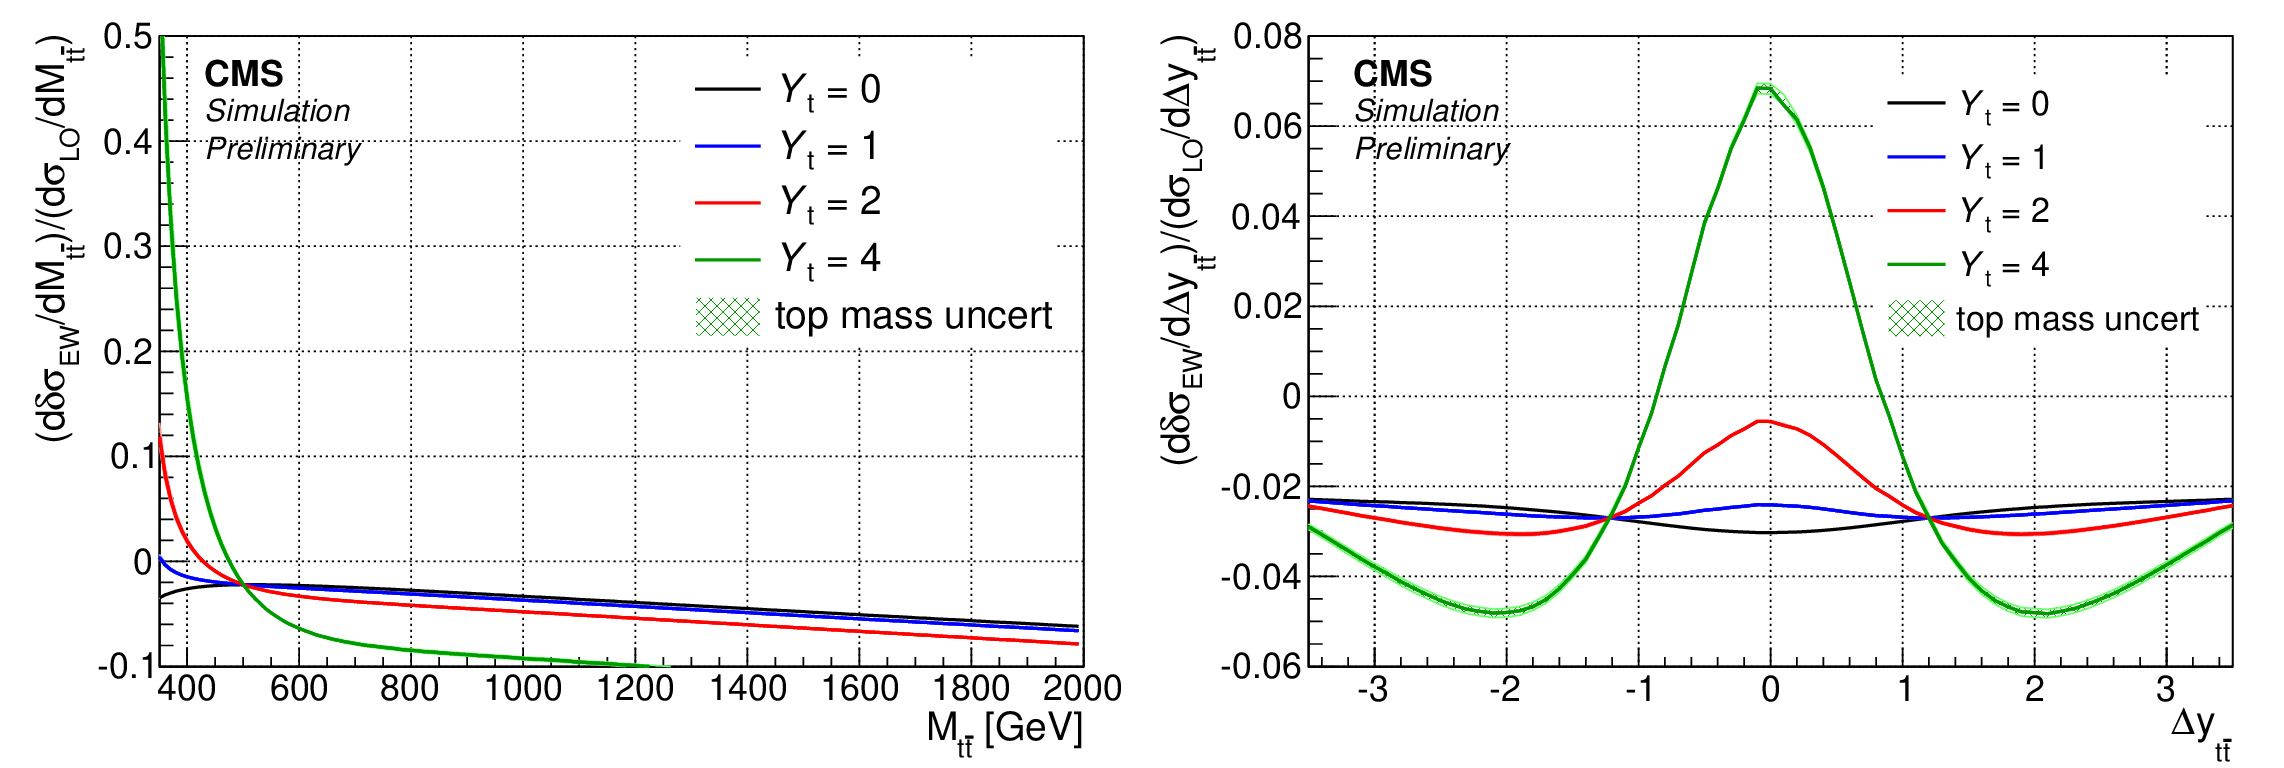 Probability of the top quark-antiquark production vs kinematic properties of the system for different values of the top Yukawa coupling (Yt=0,1,2,4). Left: Invariant mass of the system (lowest value of this variable corresponds to the production threshold).  Right: Rapidity dif-ference between top quark and antiquark (this variable is related to the angle between the two particles). The narrow bands around the lines indicate the variations of the prediction with the top quark mass.